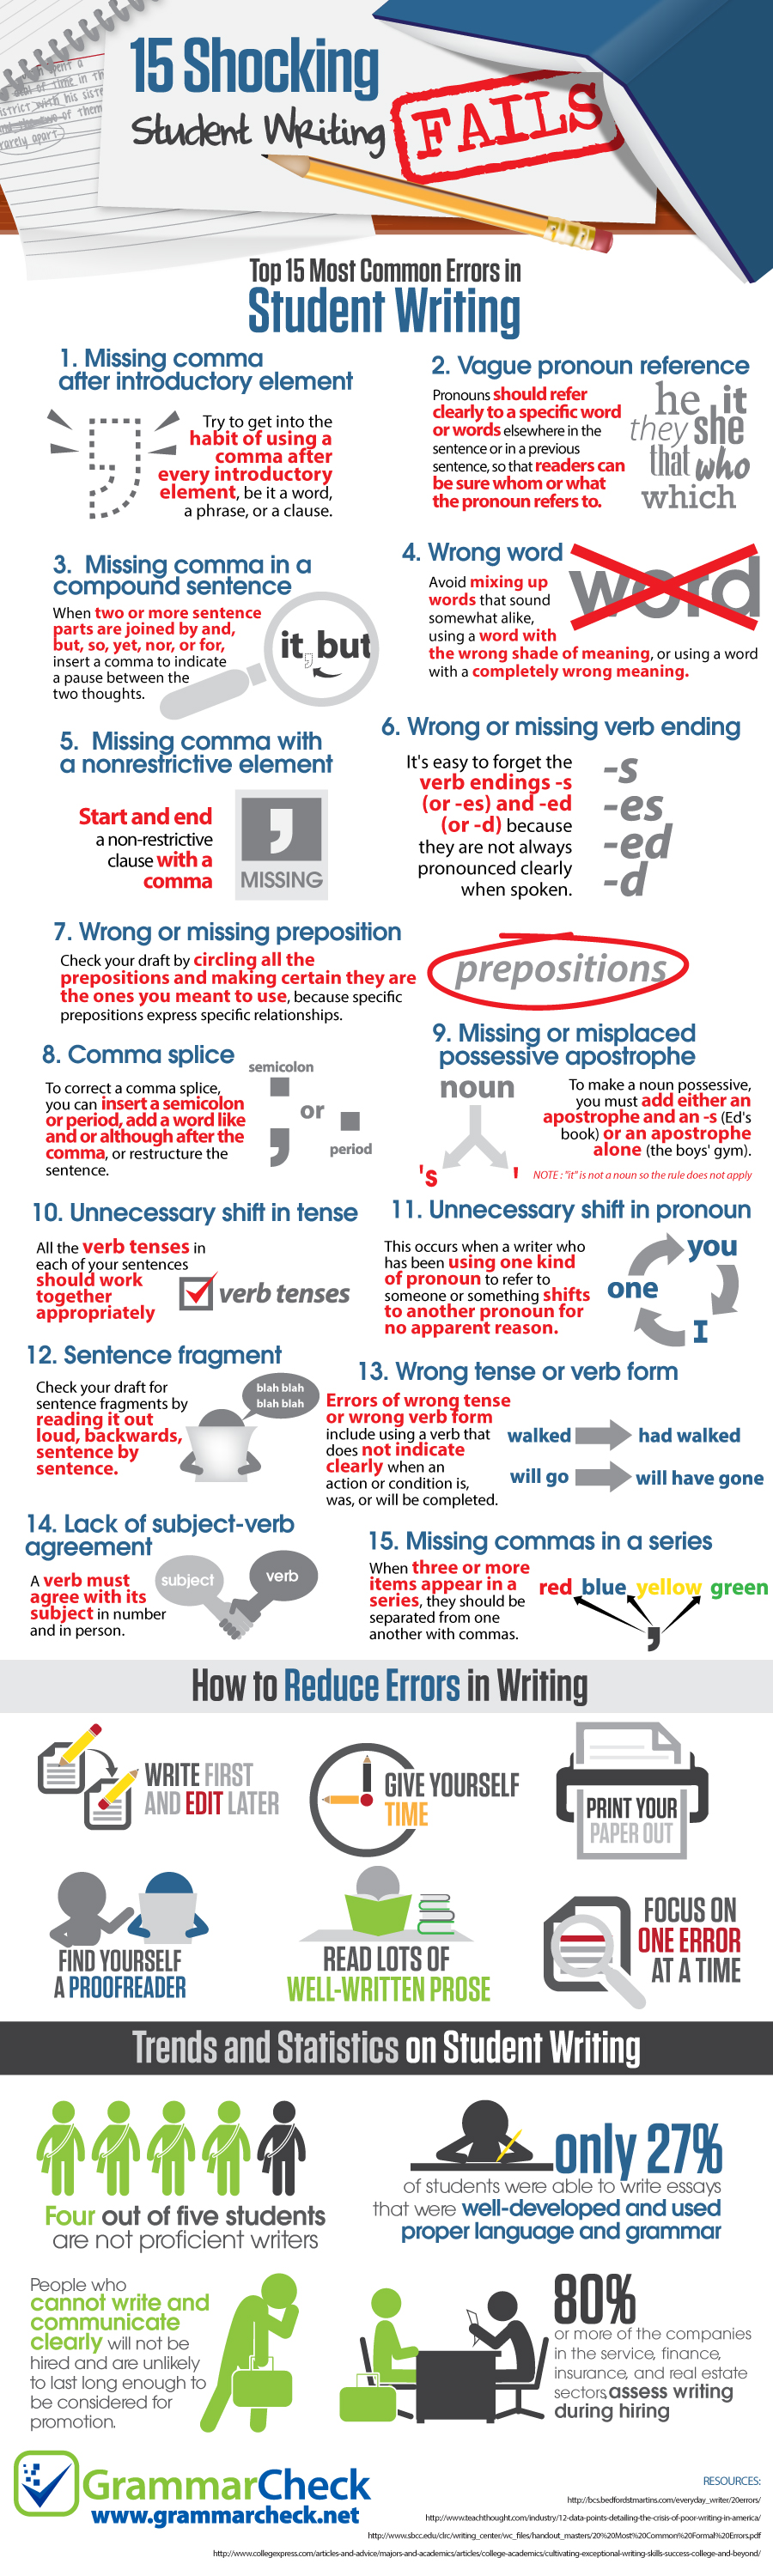 shocking student writing fails infographic 15 shocking student writing fails infographic